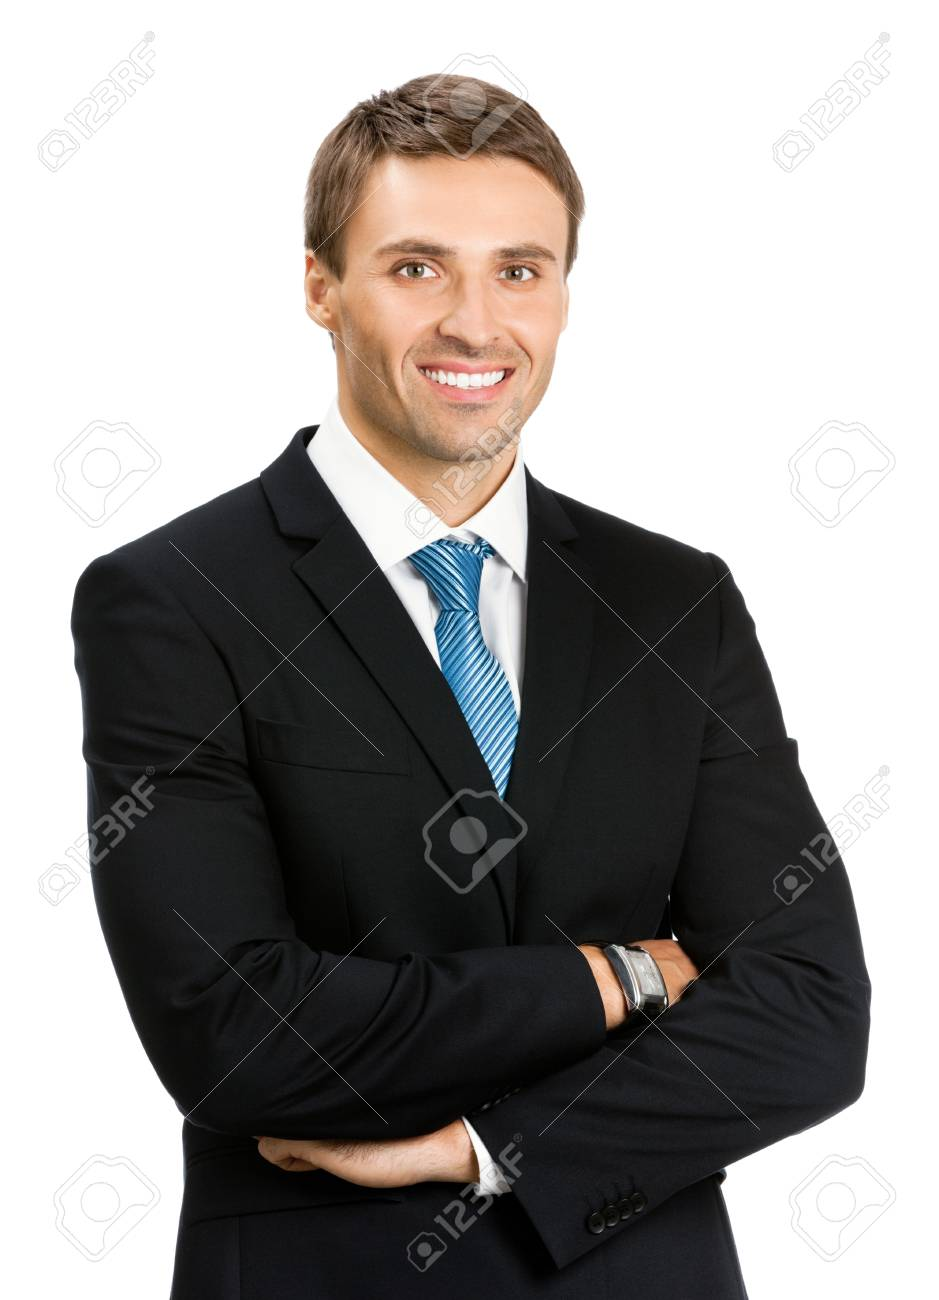 Portrait of happy smiling young business man, isolated over white background Stock Photo - 17154493